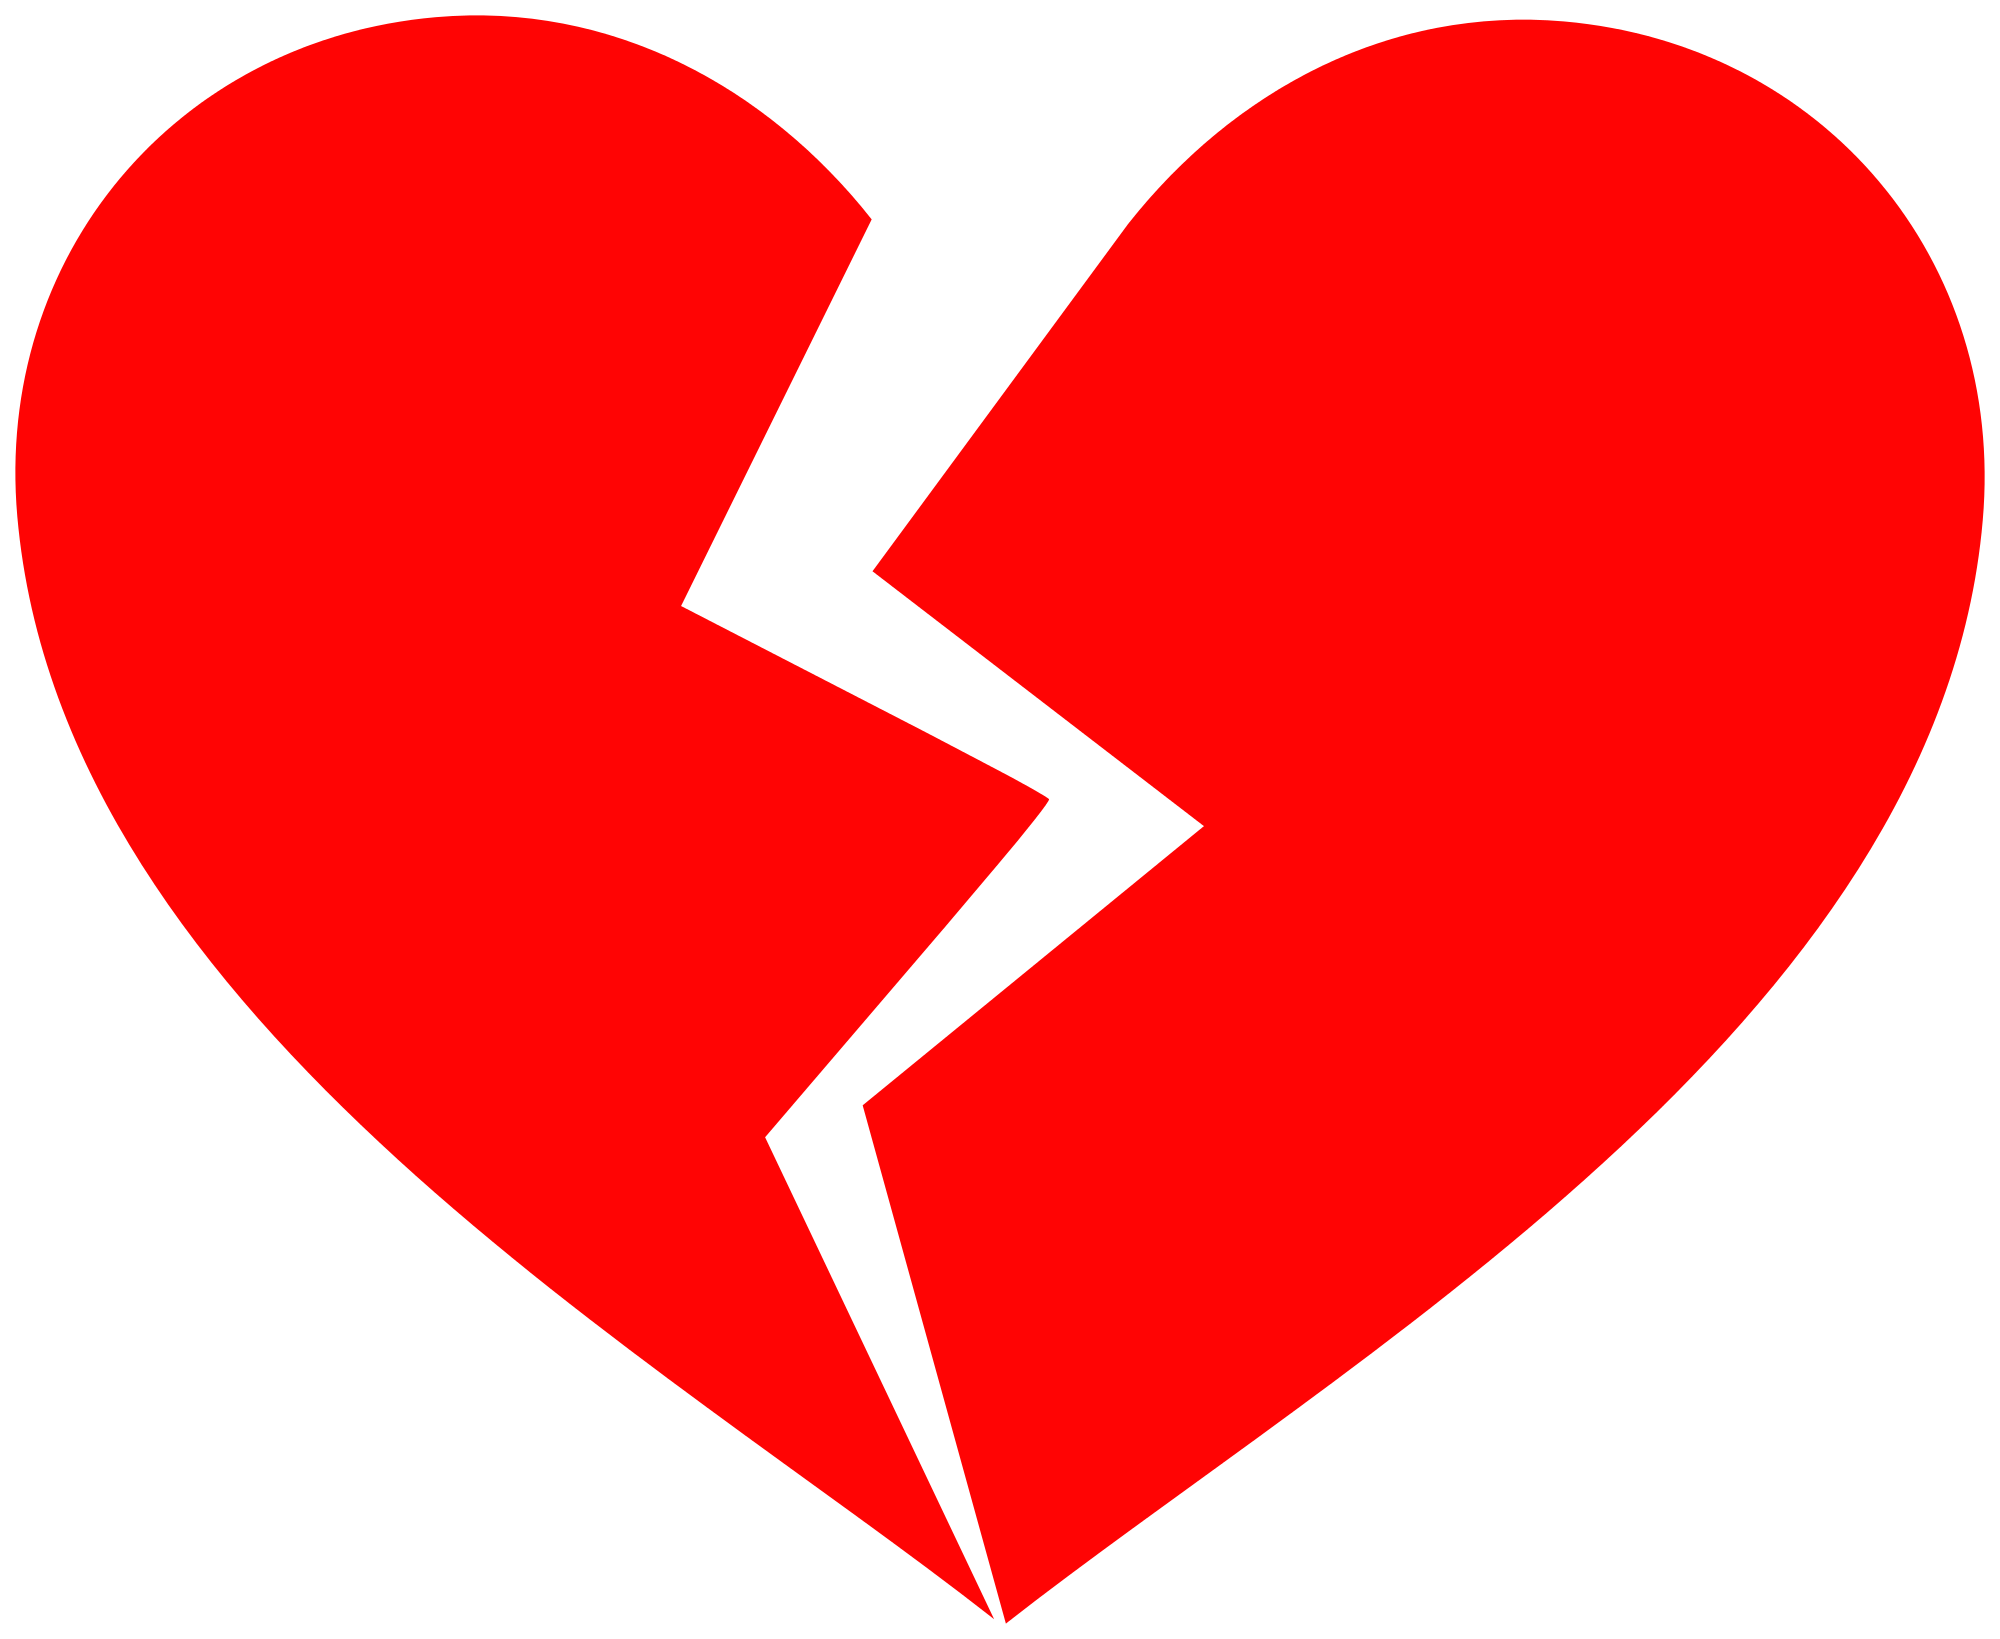 Hd Red Broken Heart Background Png Transparent Background Free Download 45717 Freeiconspng